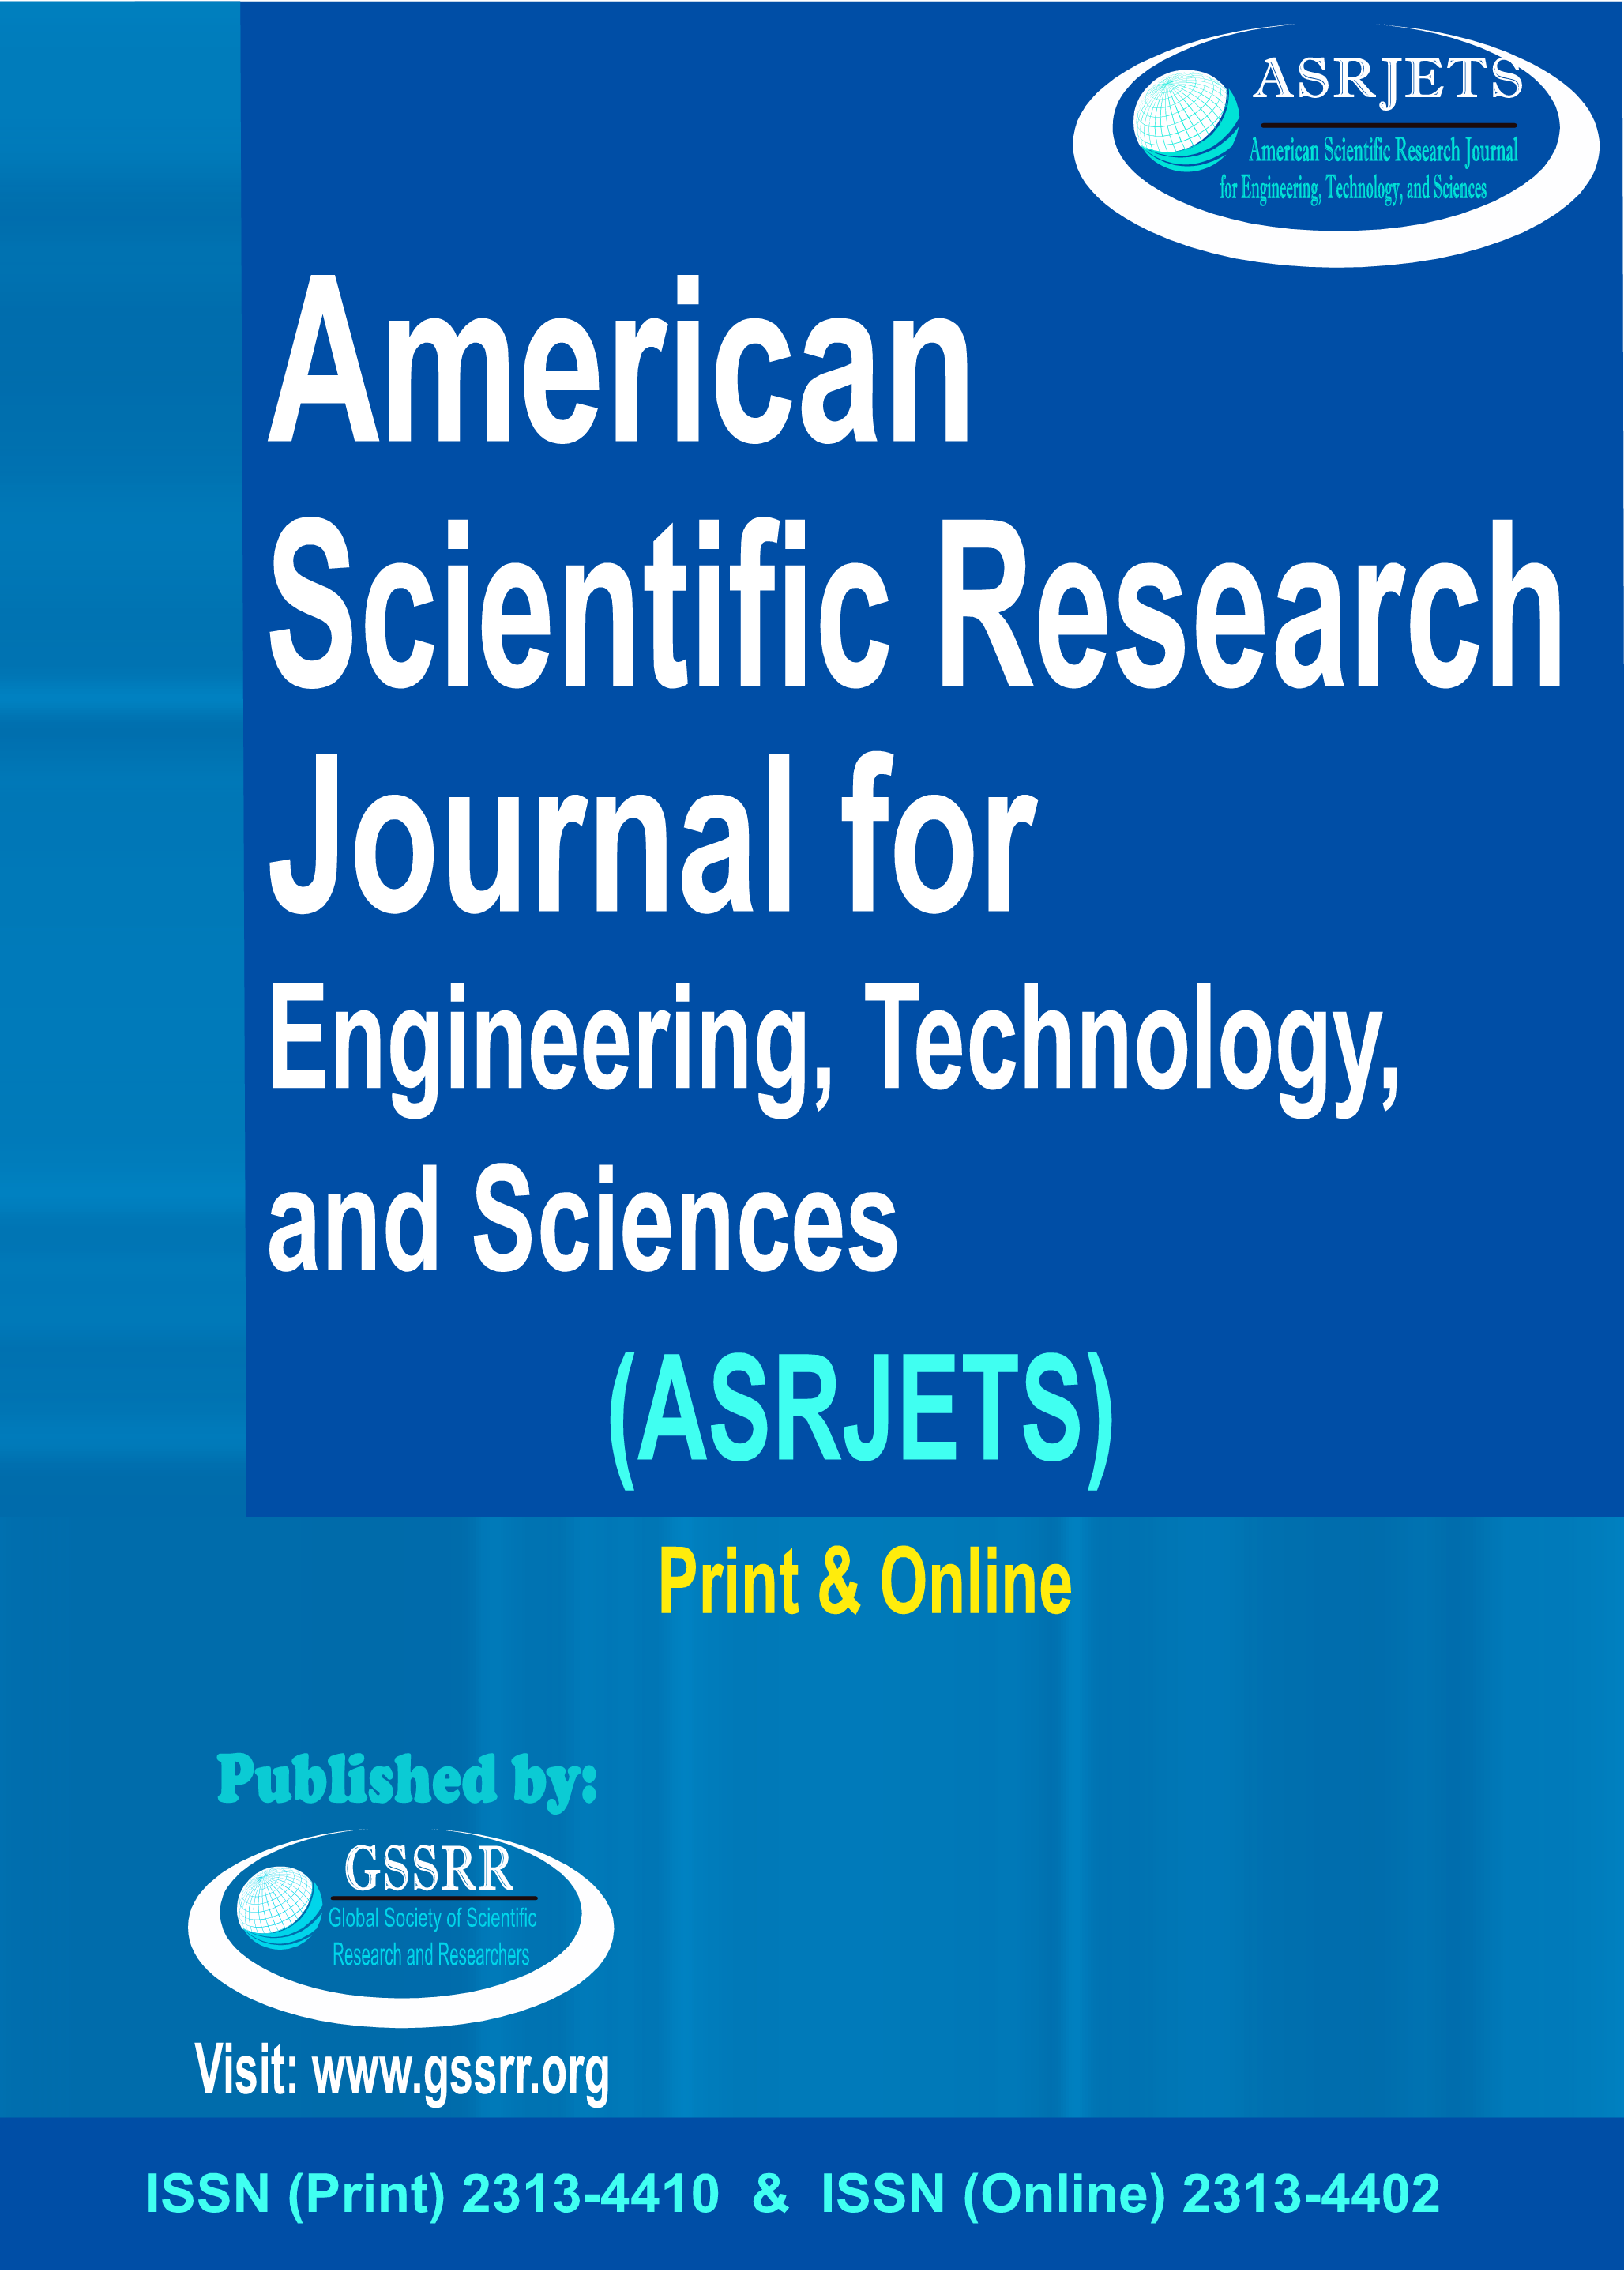 Where Can I Publish My Research Article?